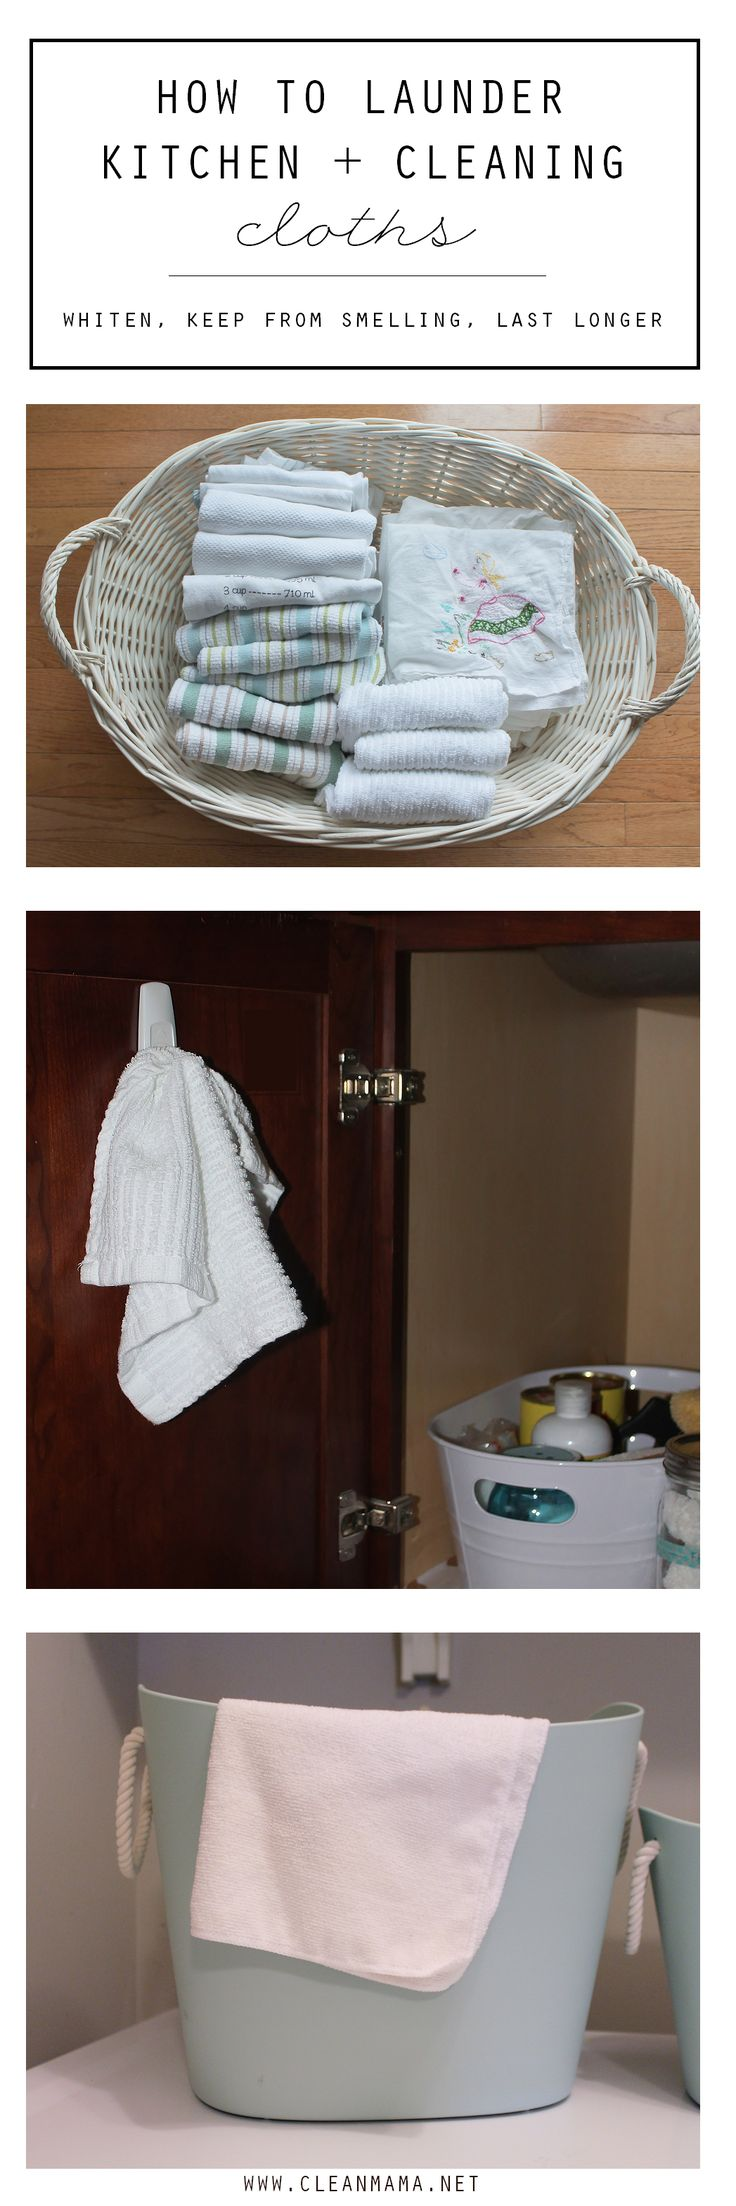 Stinky kitchen towels and cloths no more with these laundering and cleaning tips!